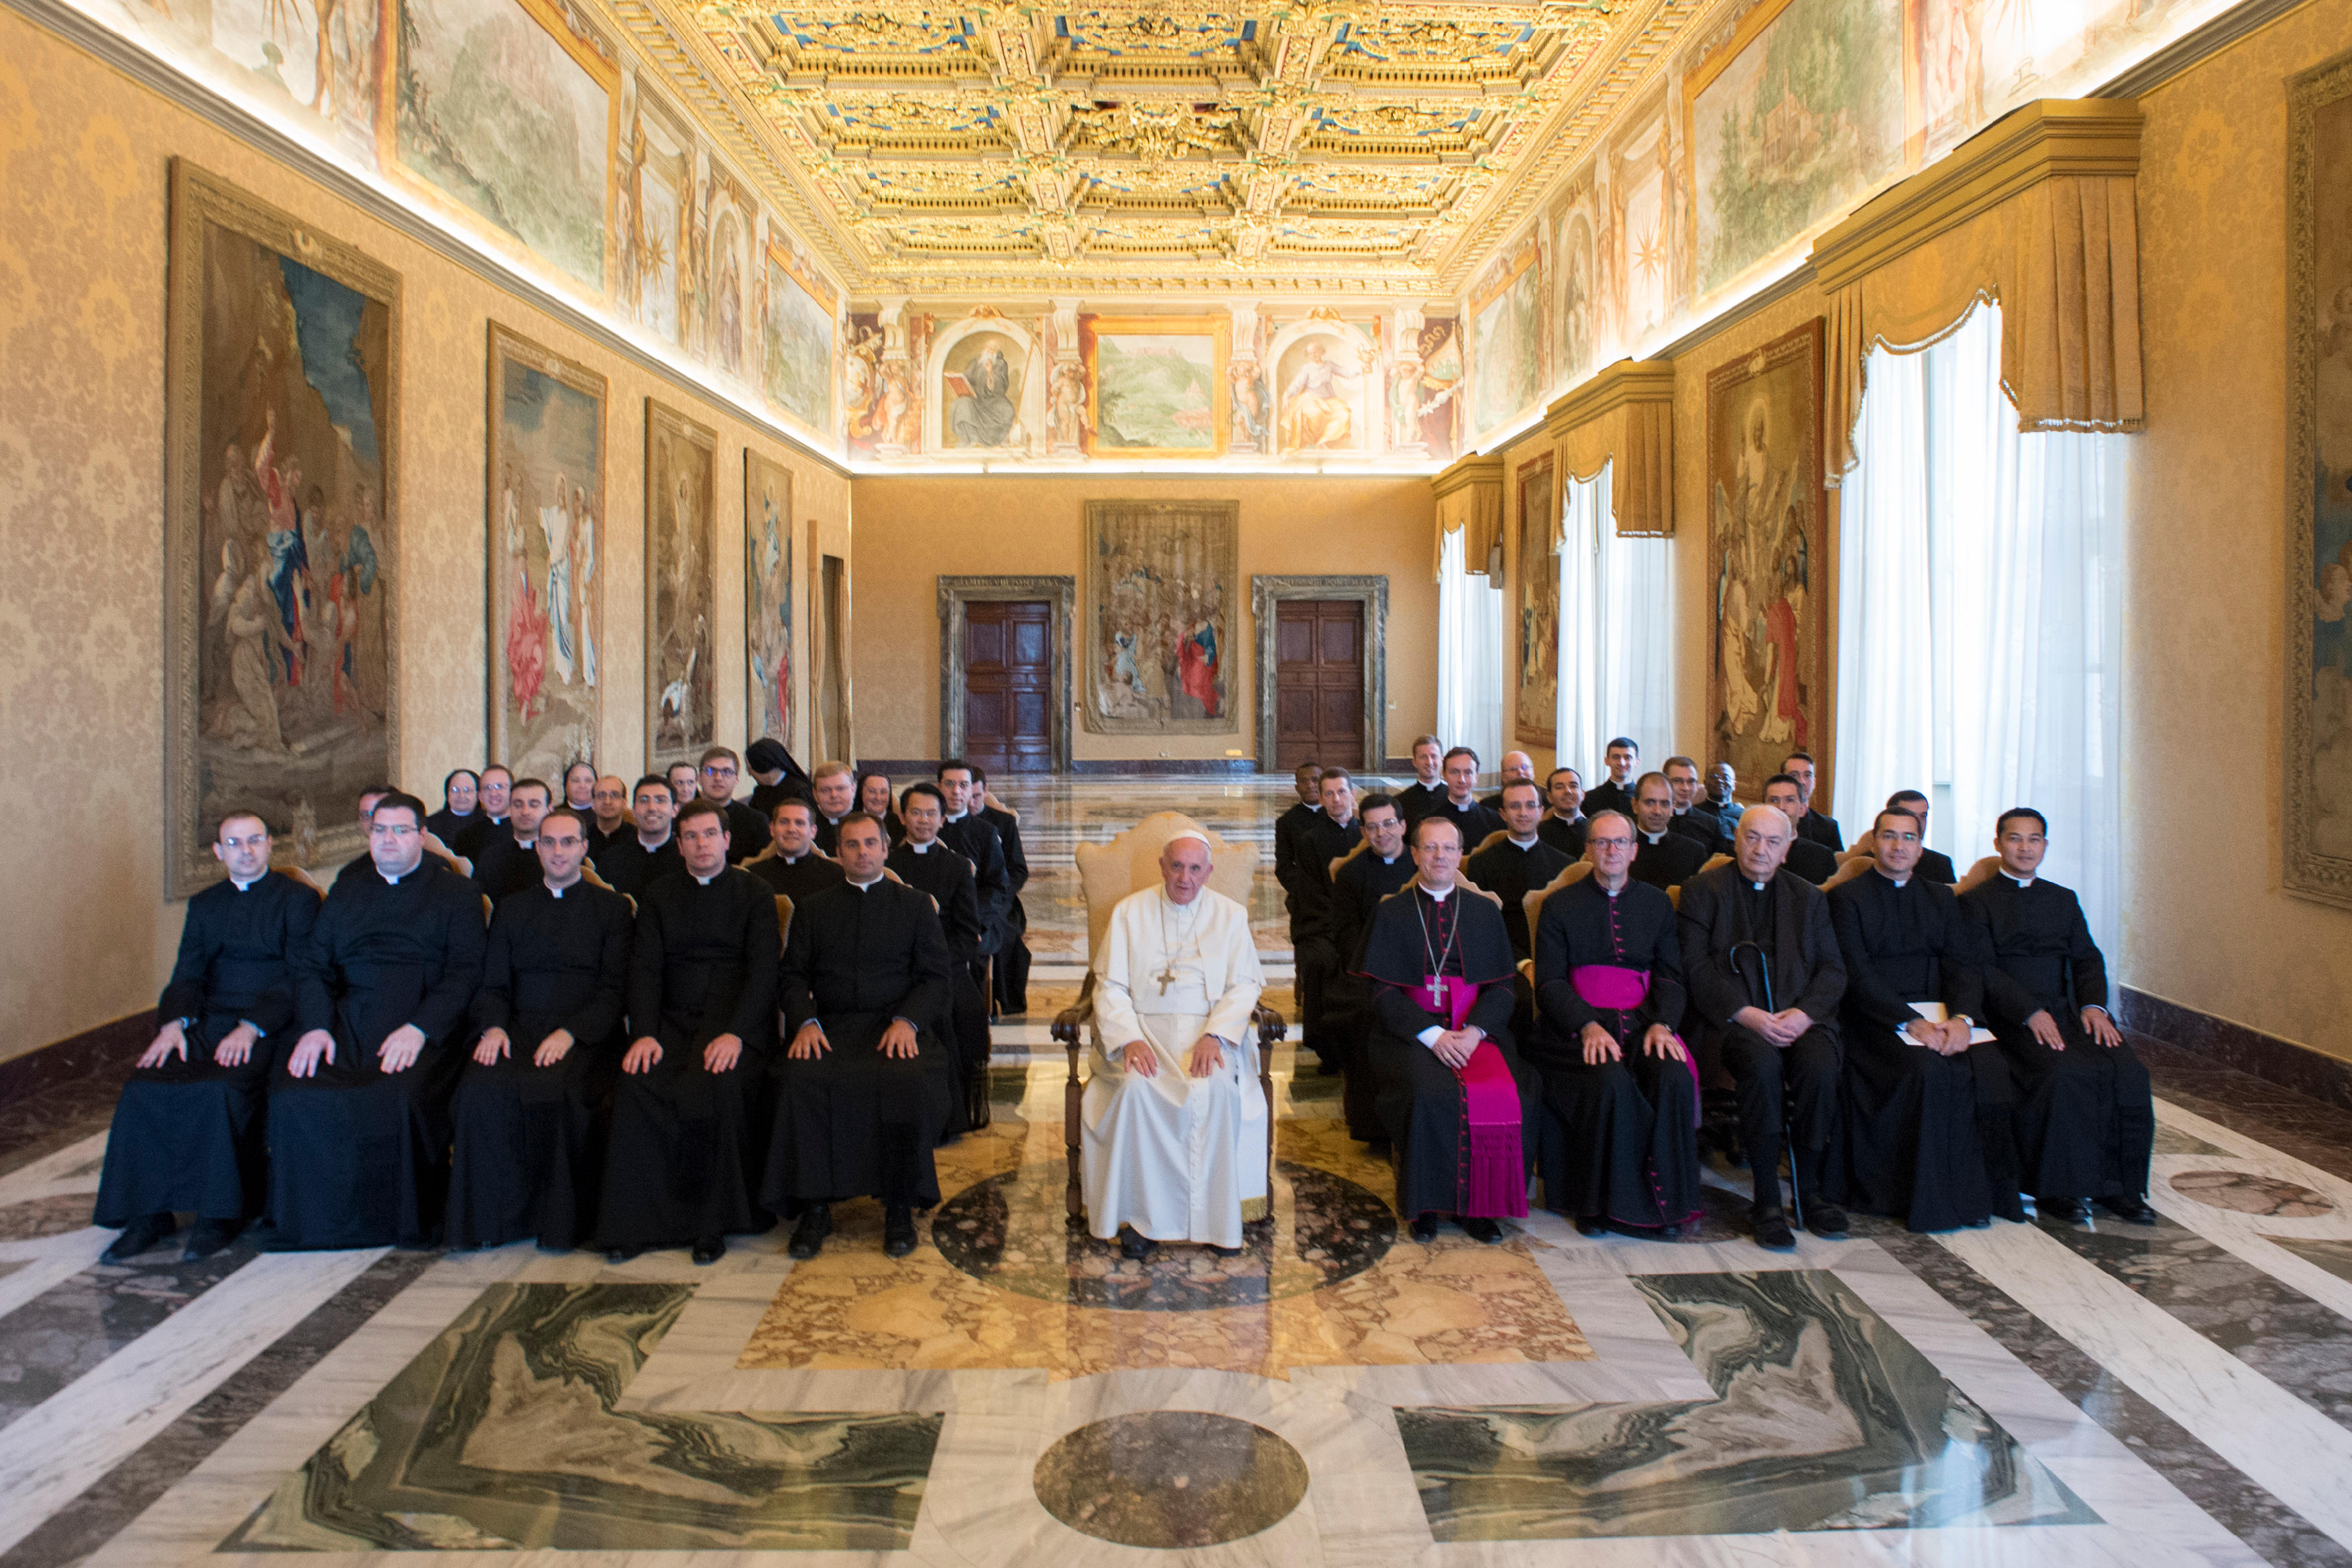 Pope Francis receives the Pontifical Ecclesiastical Academy